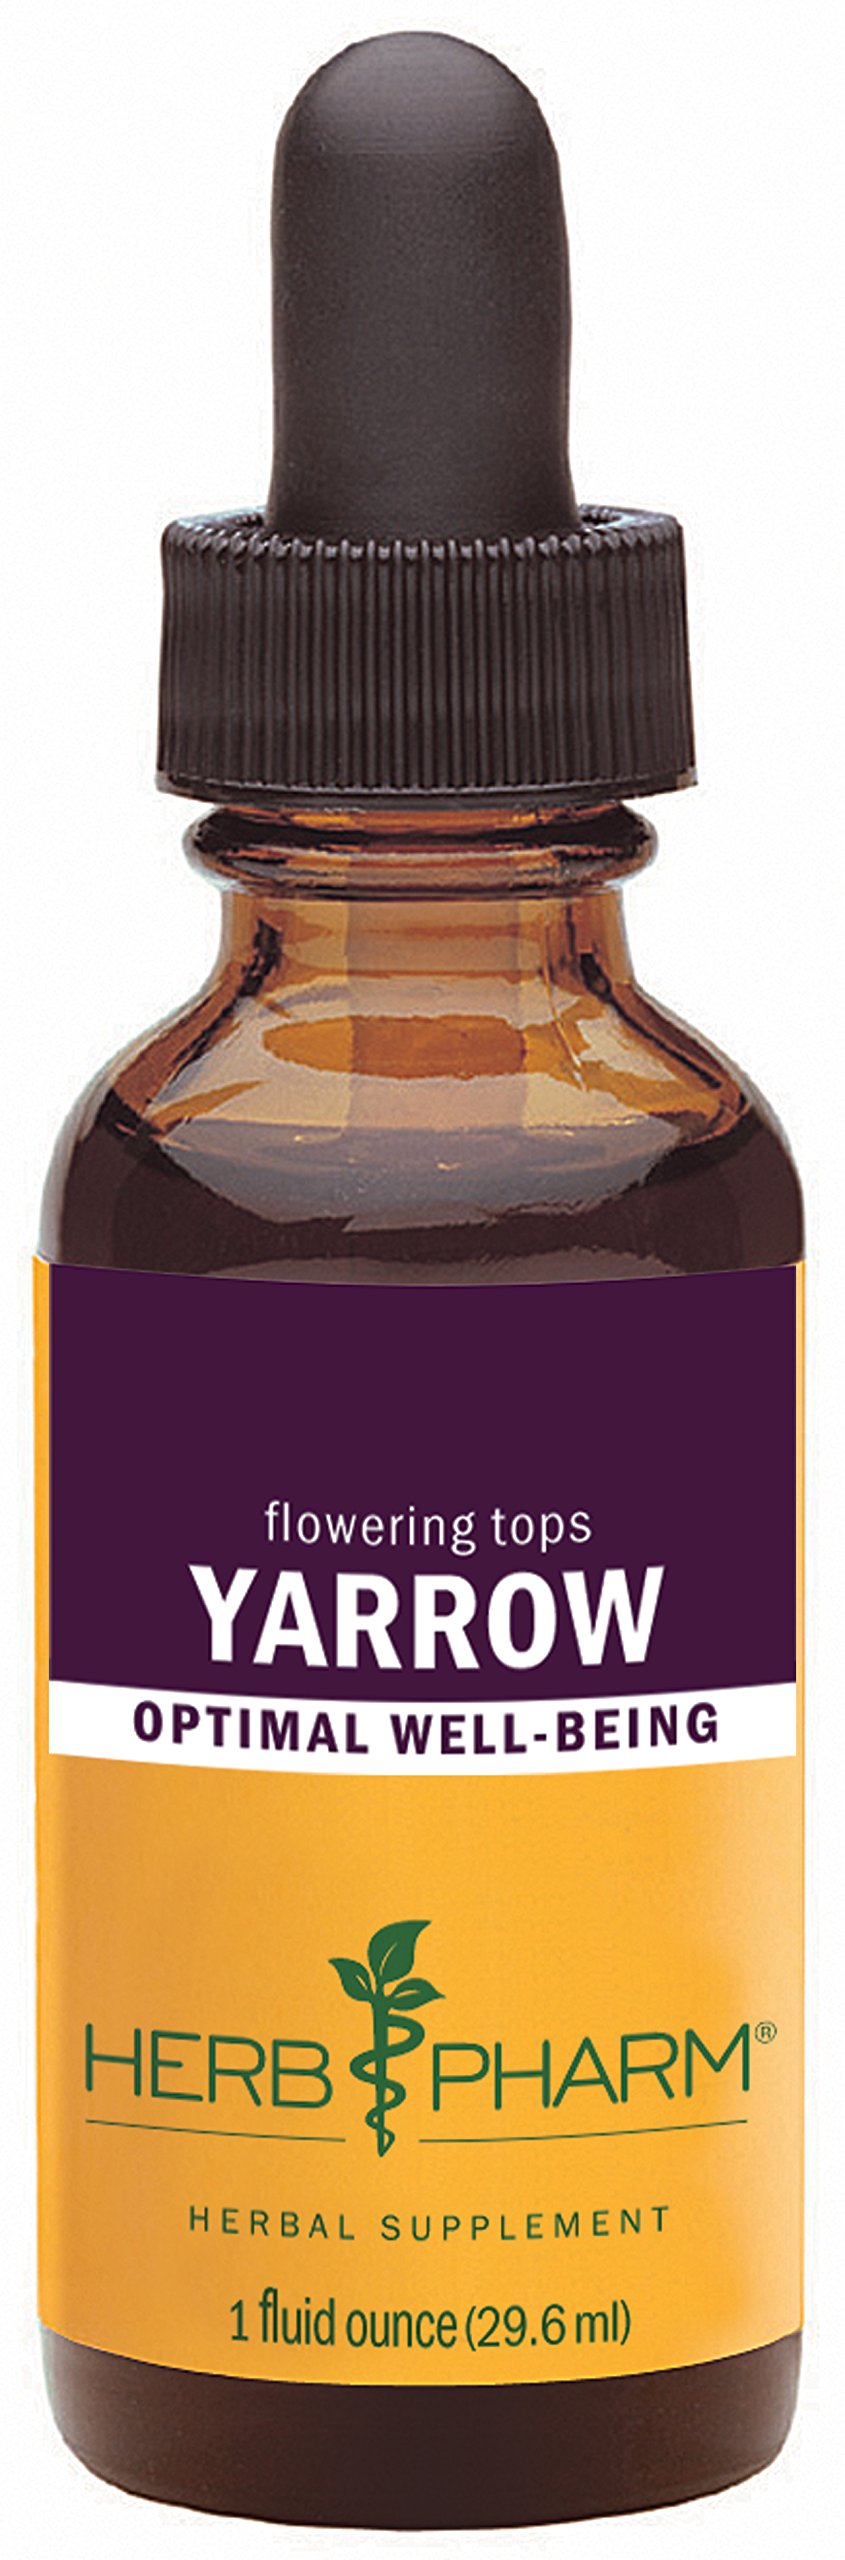 Herb Pharm Yarrow Flowering Tops Extract - 1 Ounce